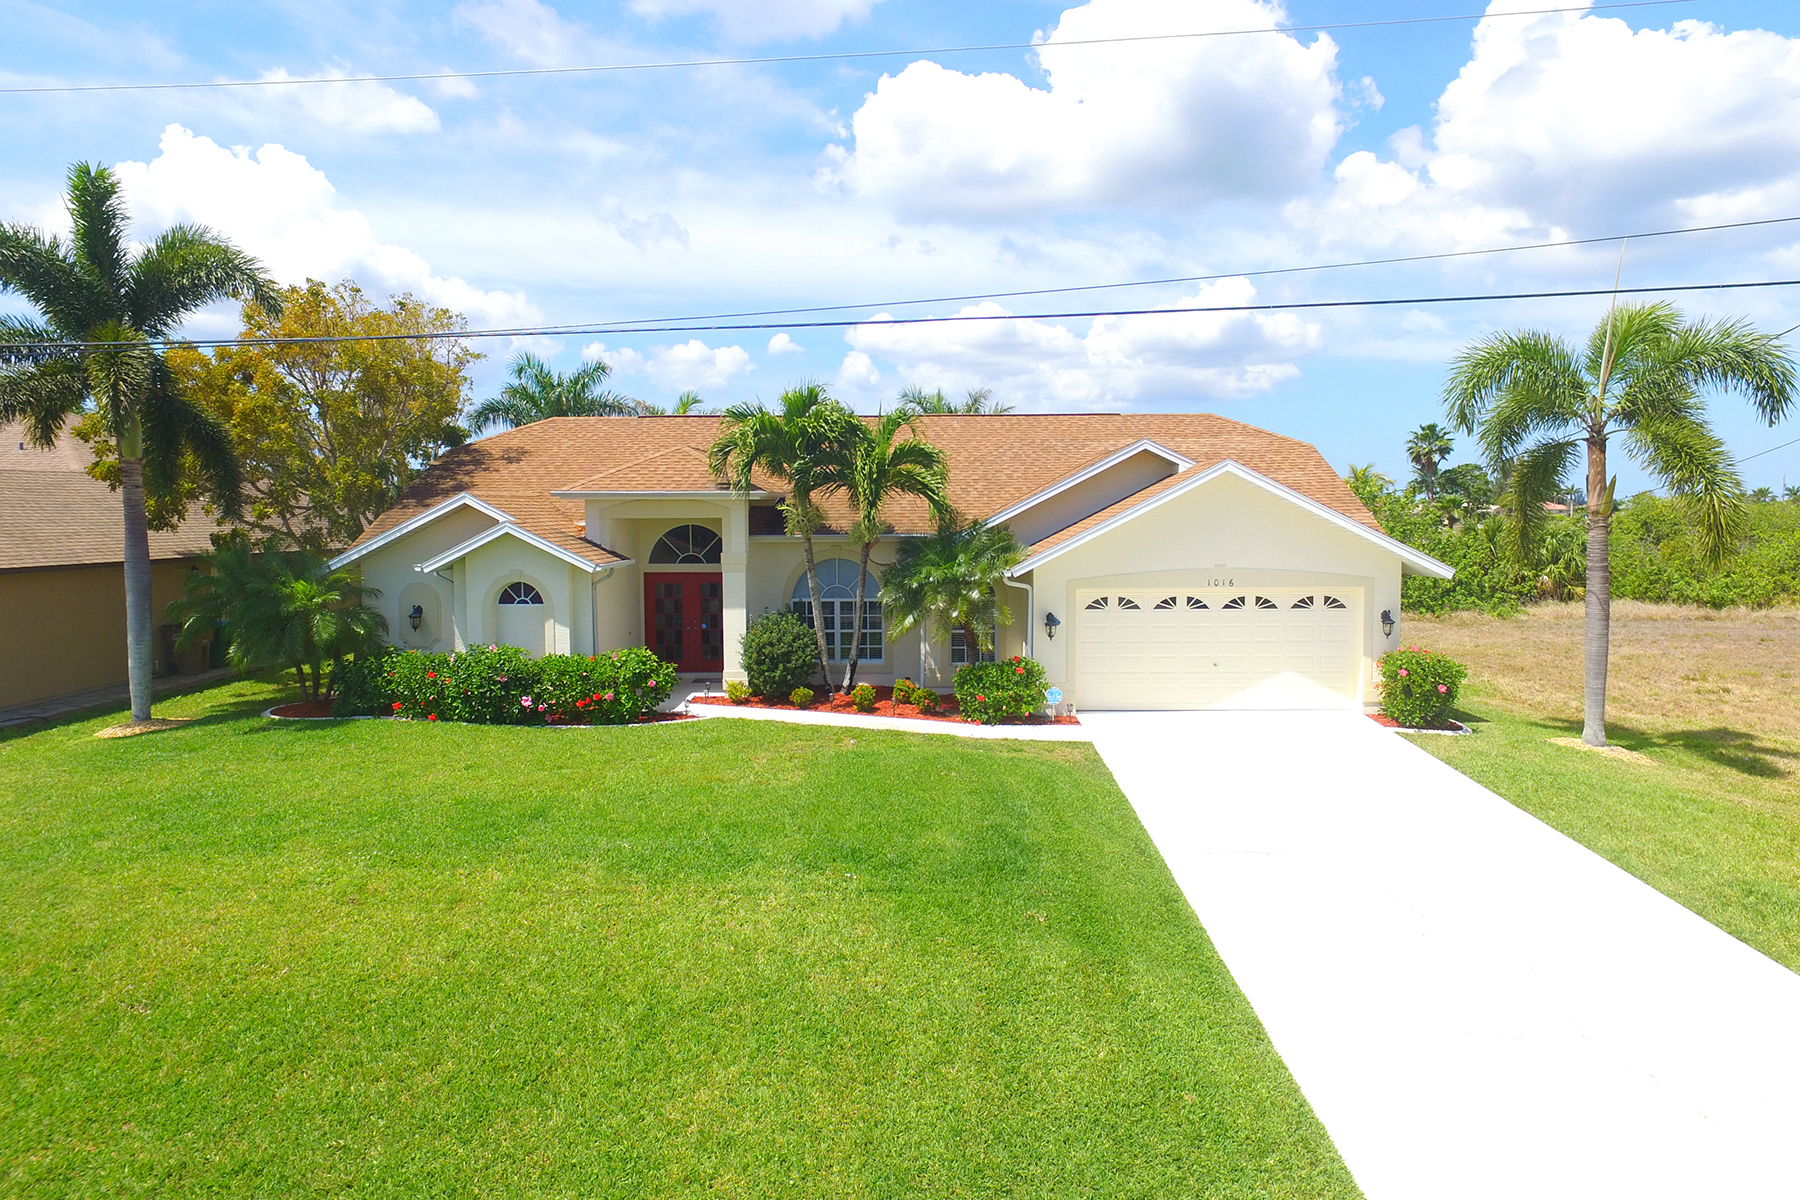 Casa Unifamiliar por un Venta en CAPE CORAL 1016 NW 36th Ave Cape Coral, Florida 33993 Estados Unidos